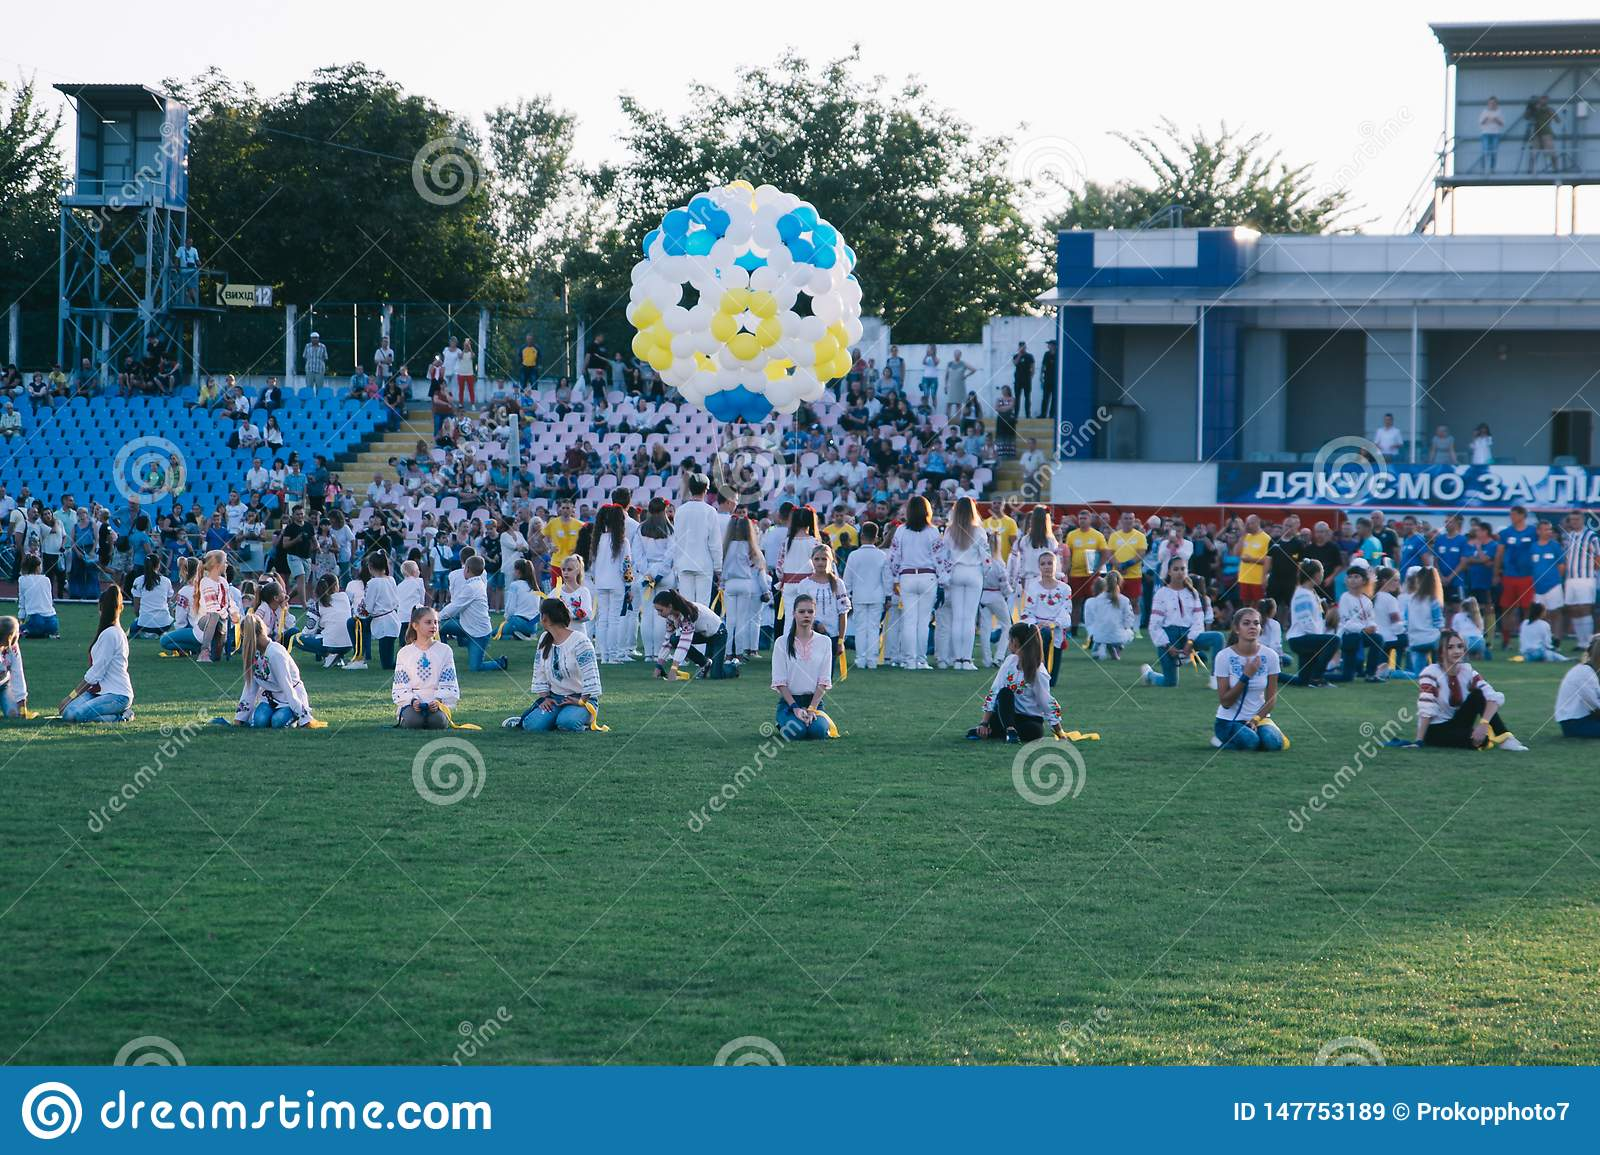 Independence Day celebrations at the stadium in the city of Cherkasy August 24, 2018